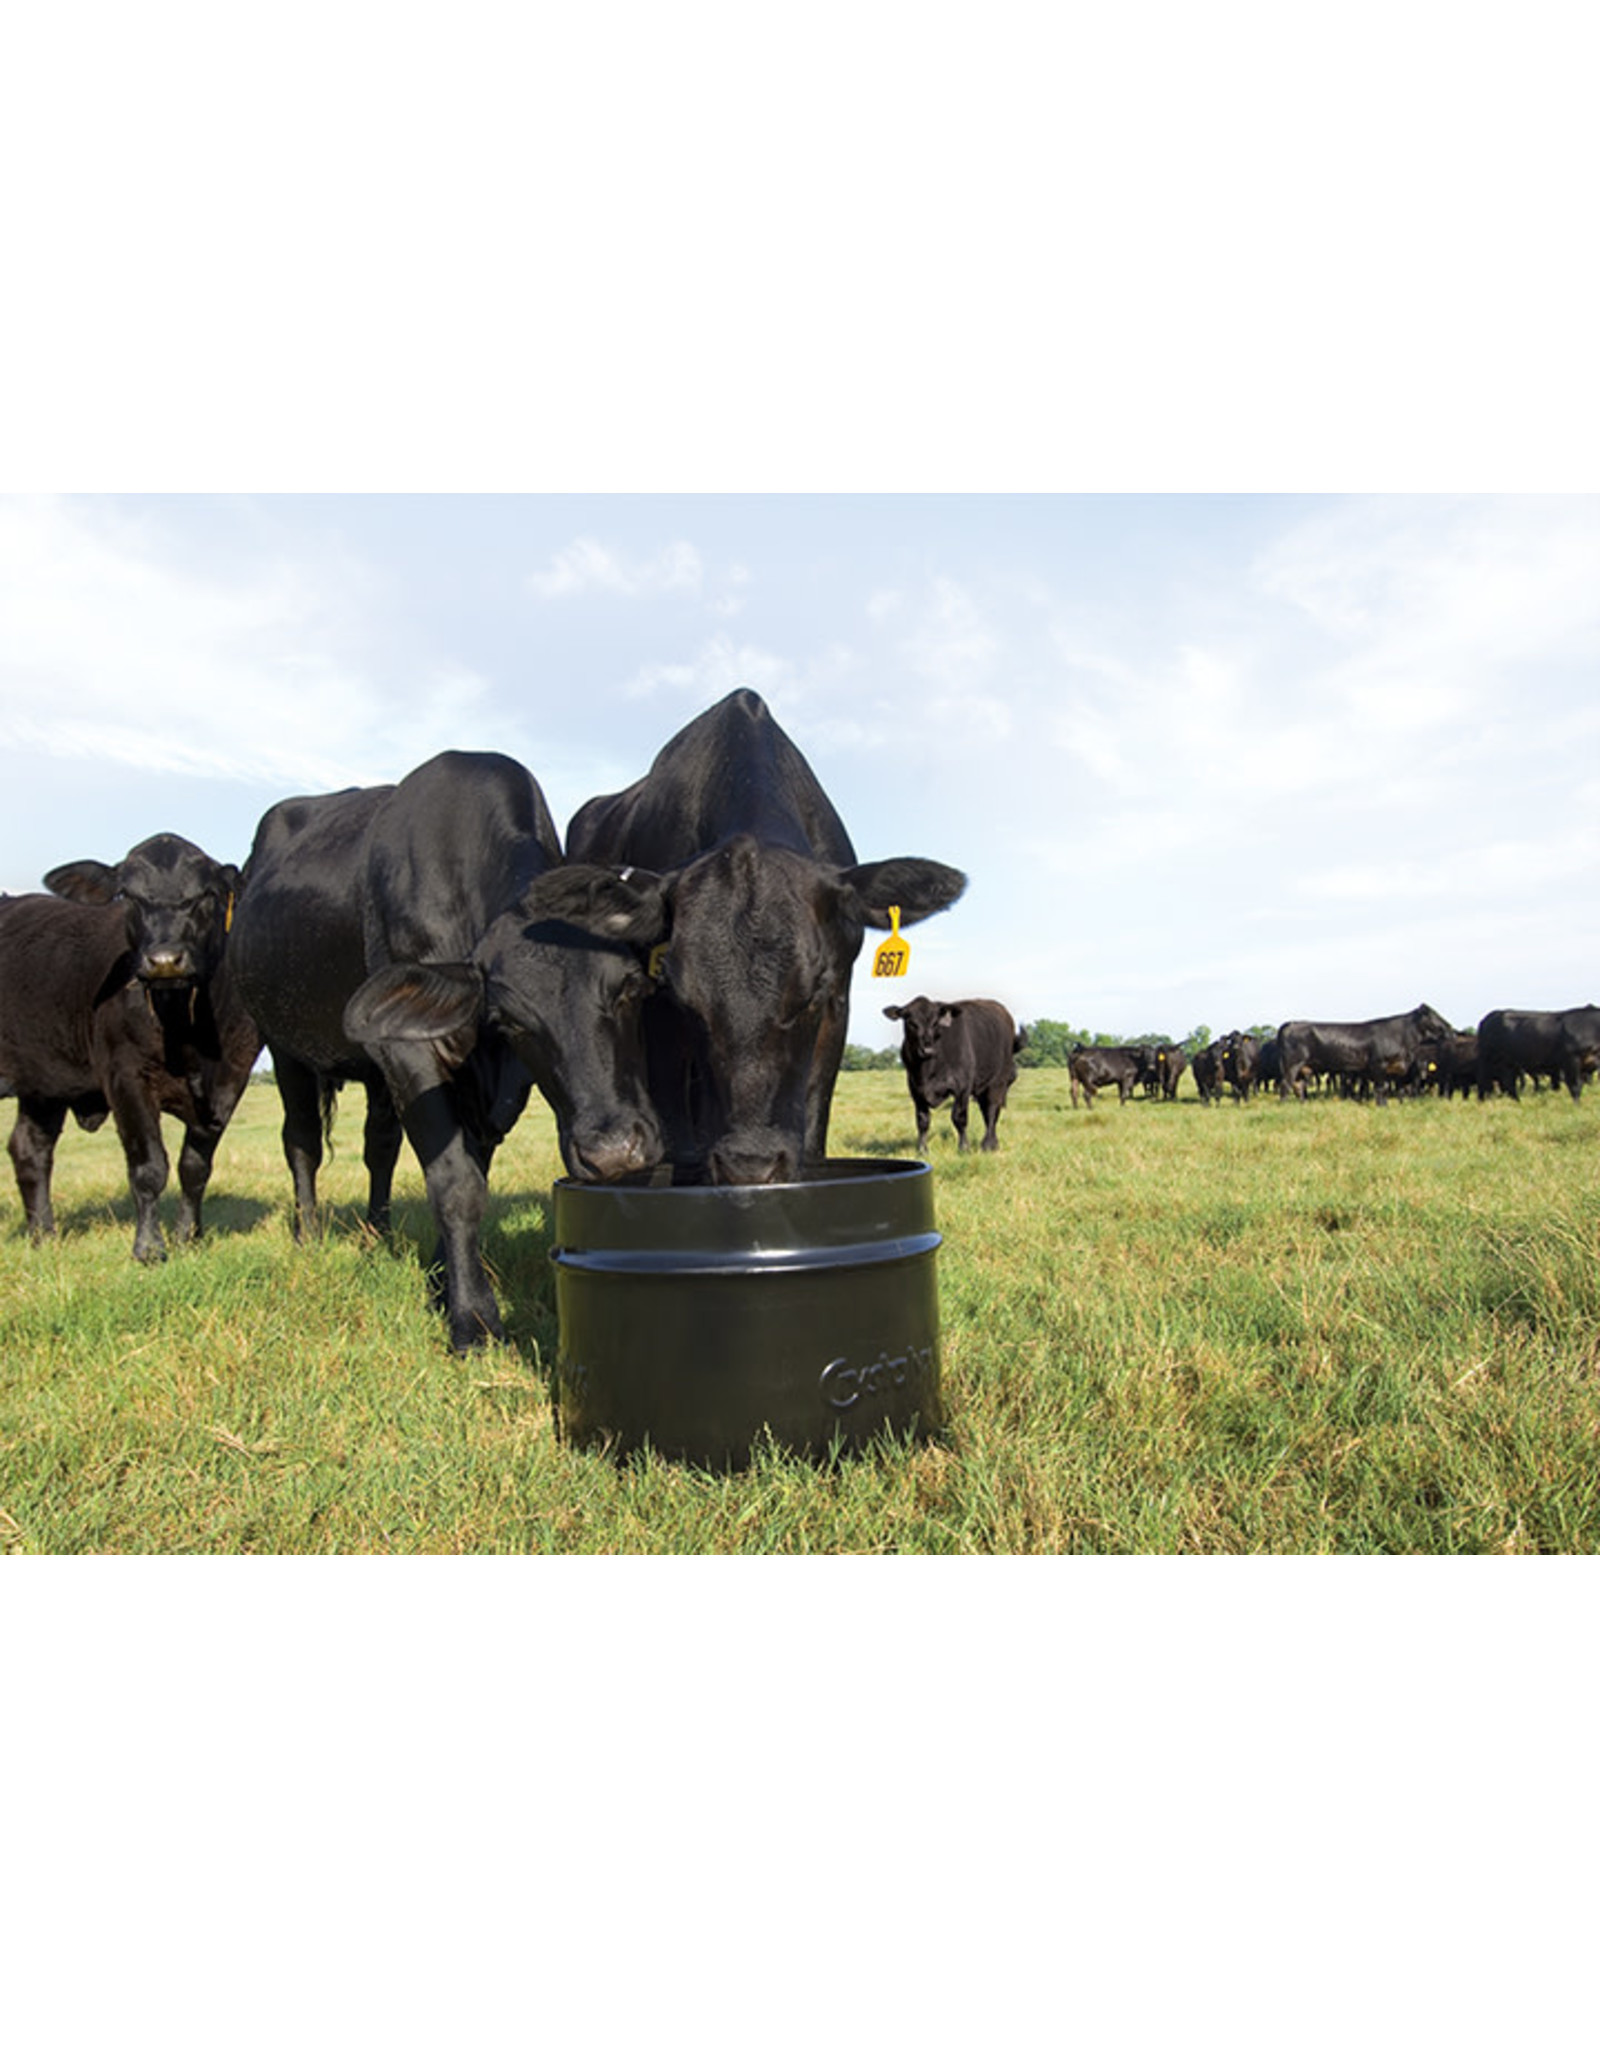 Breed Up 28% *ALL BREW* 250 lbs Steel  -The same as Breed Up 28% (see description) but has Bio-Mos which helps eliminate e coli and bacteria in your calving pen stopping sick calves. Use 30 days prior and don't stop until after last calf has dropped.